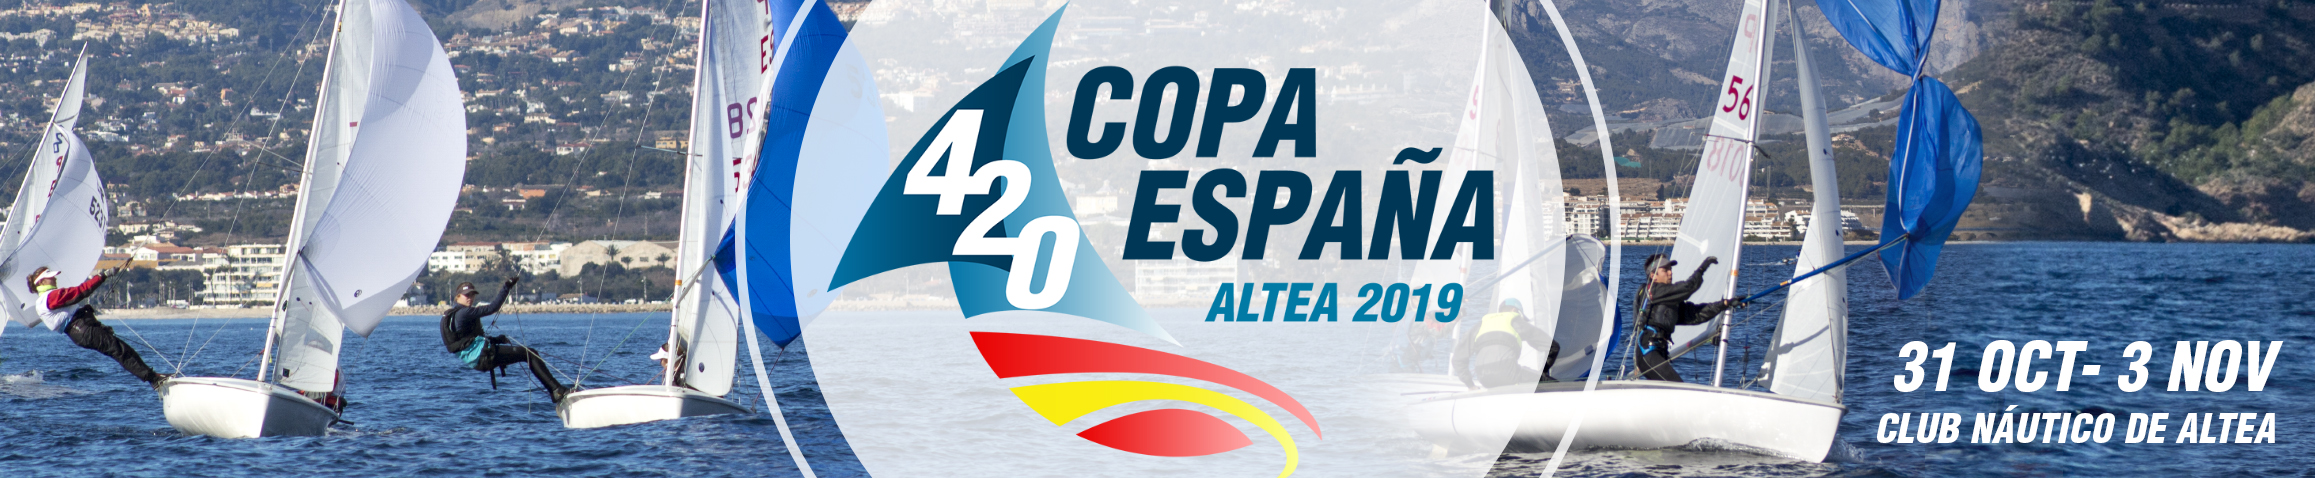 SAILING CAMP NR 1:     Spanish Cup Regatta – Altea